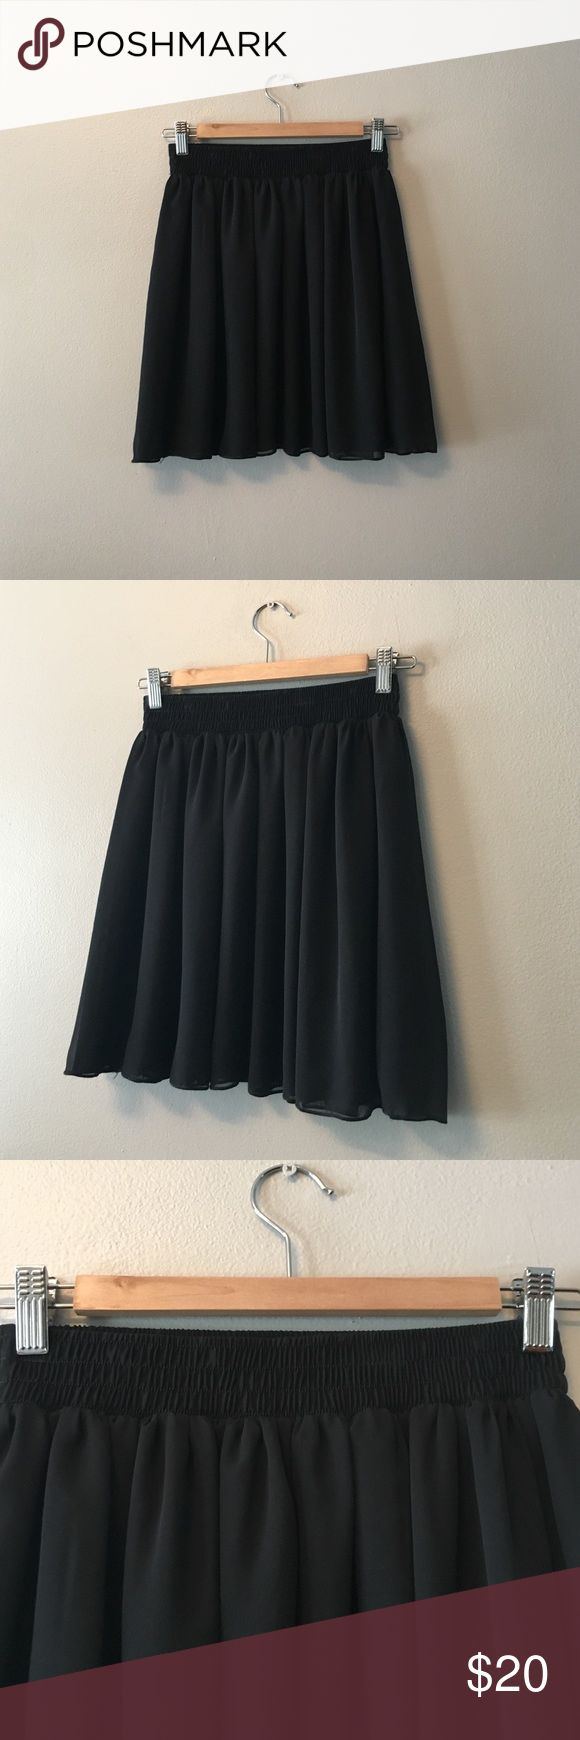 American Apparel skirt M/L Black shear chiffon American Apparel skirt size M/L. Runs more close to a true medium. Two layers of soft chiffon. Slightly shear in the light and would be cute layered with think tights or leggings. Worn only twice. Just like new. American Apparel Skirts Mini